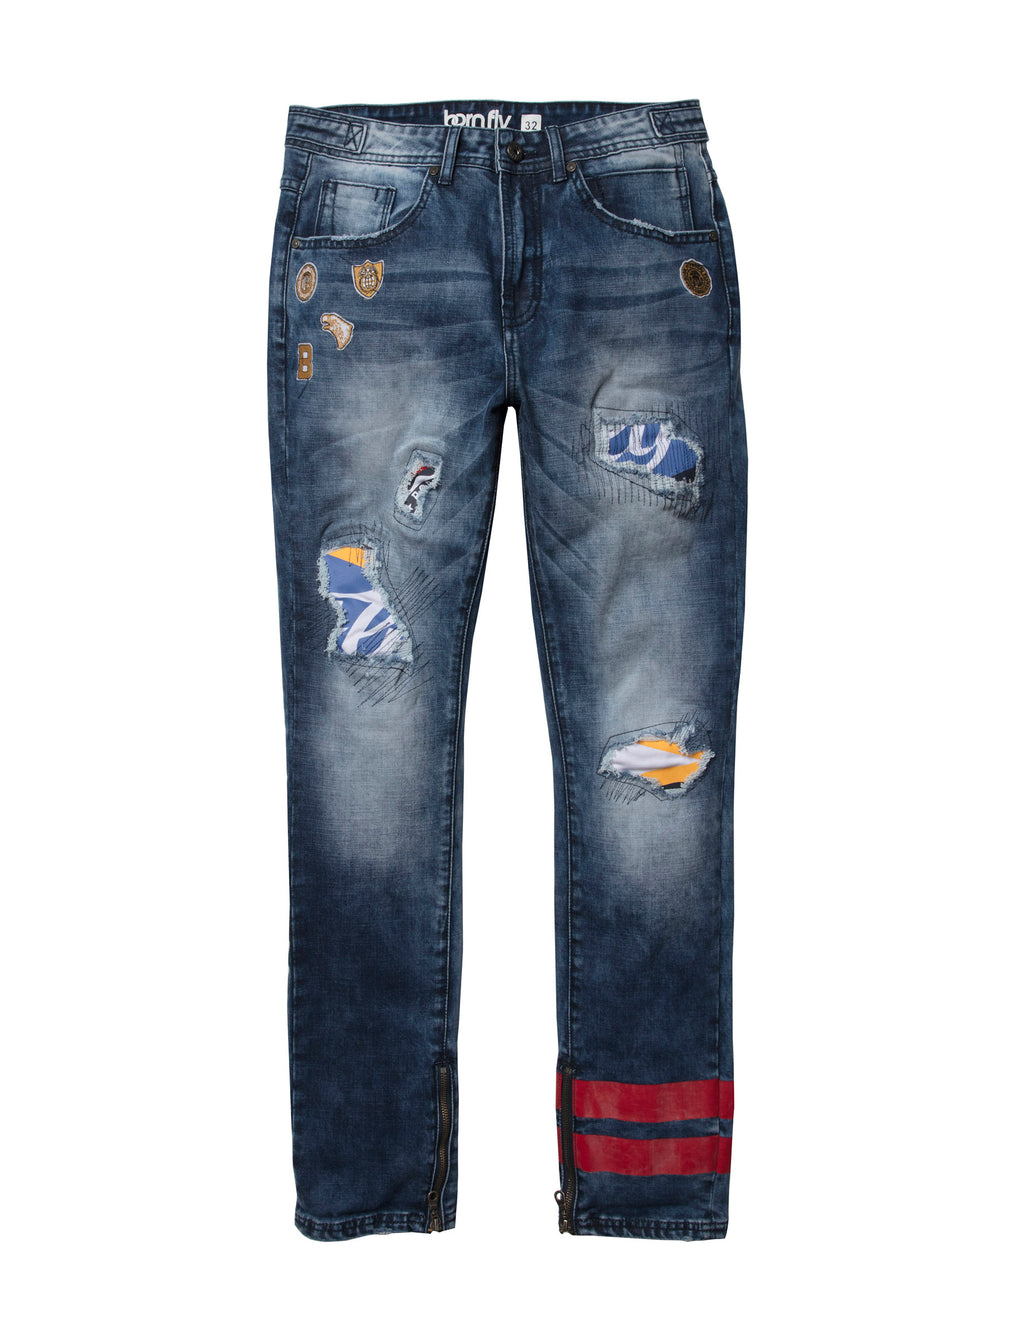 Bosten Denim Jean